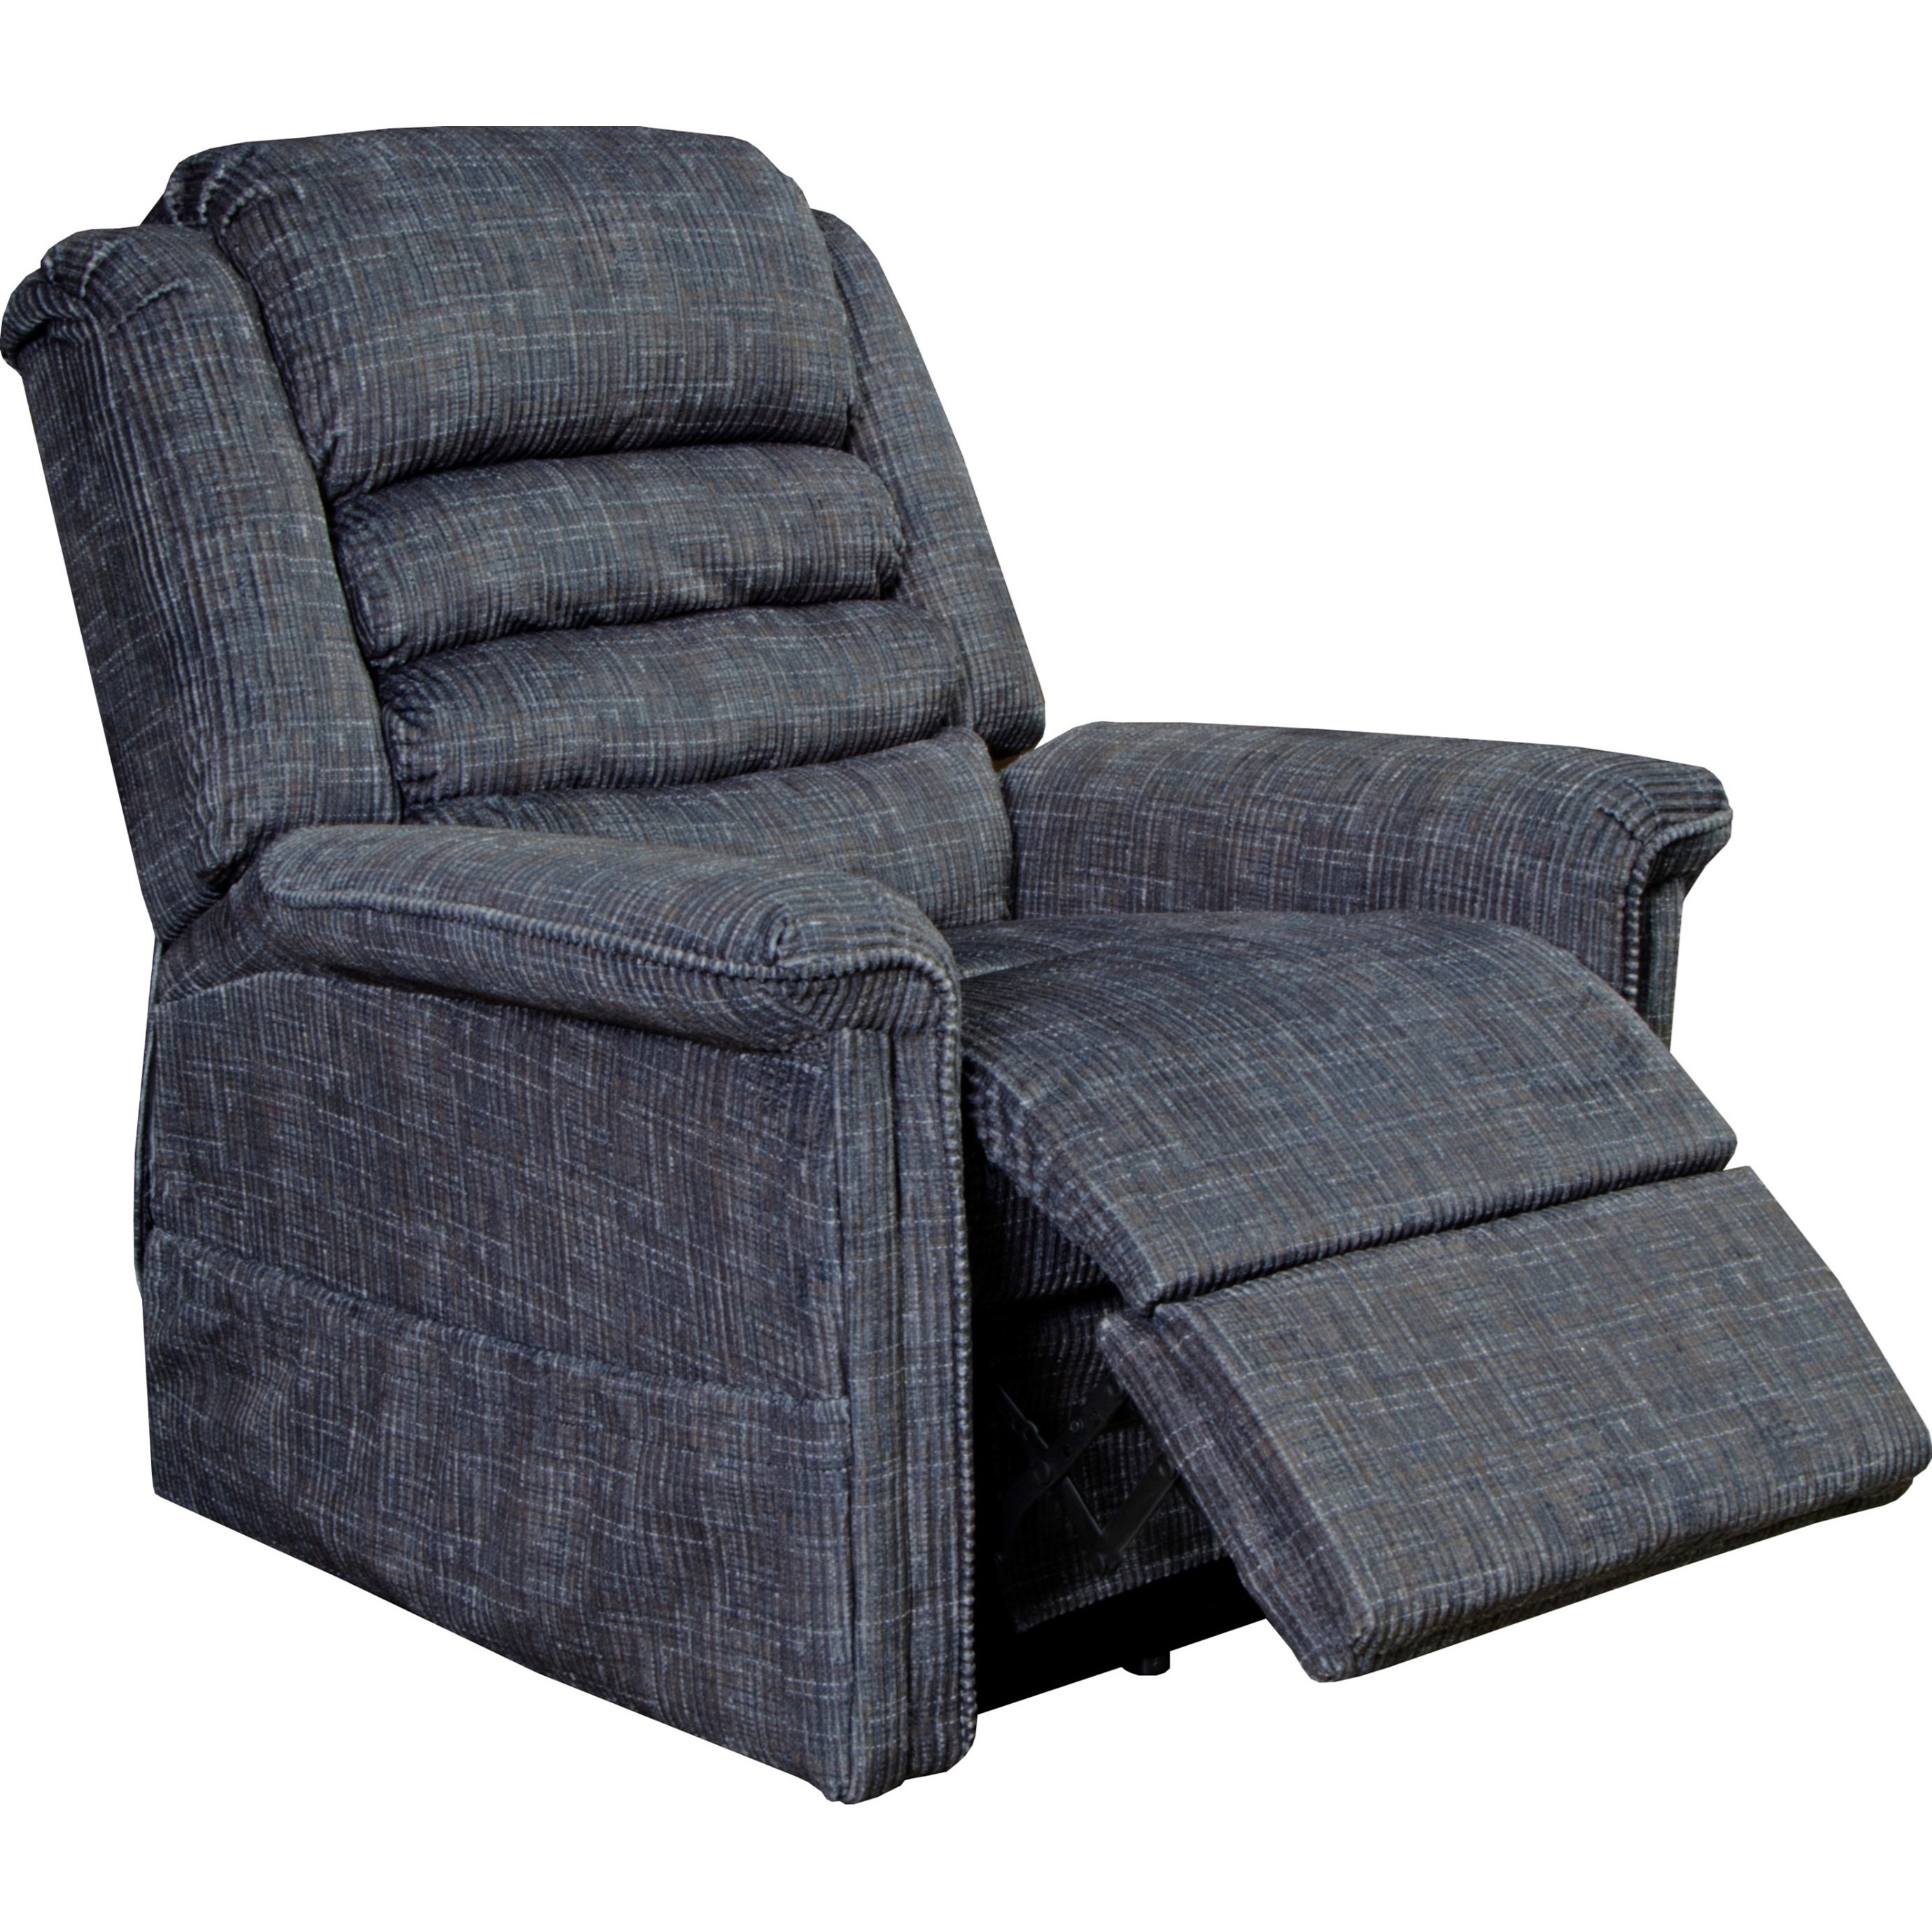 4825 Power Lift Recliner by Catnapper at Rooms for Less